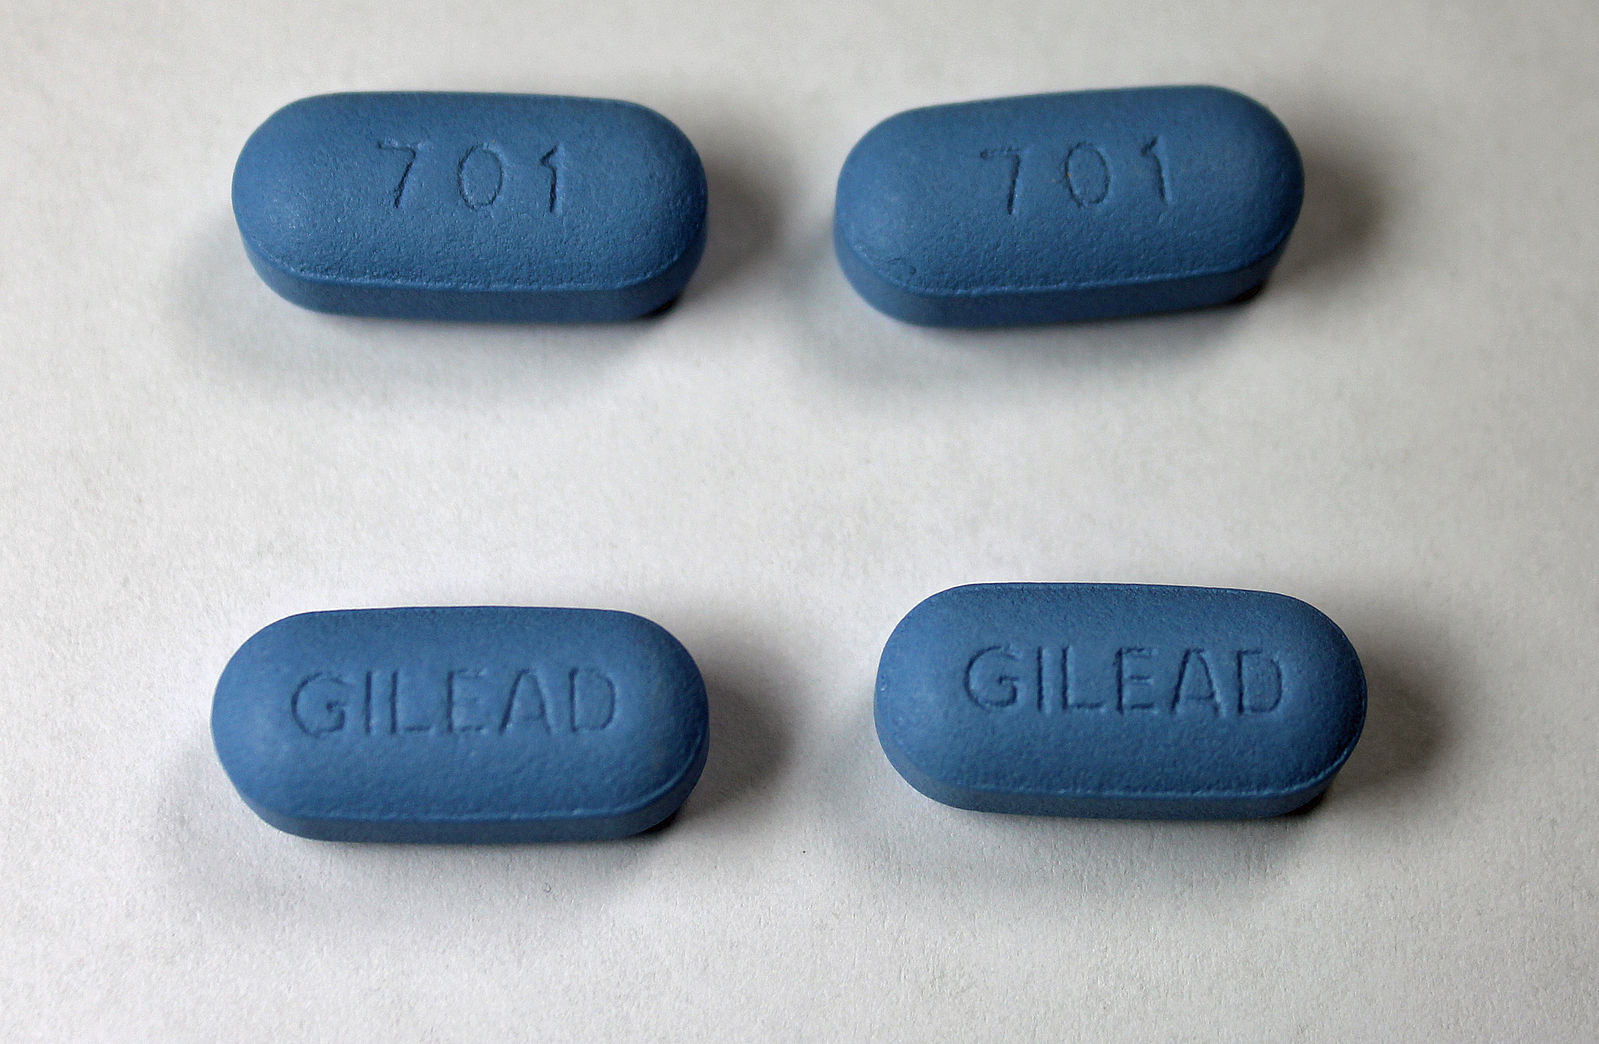 One year 40% HIV infection dropoff in London attributed to grey-market generic pre-exposure prophylaxis drugs